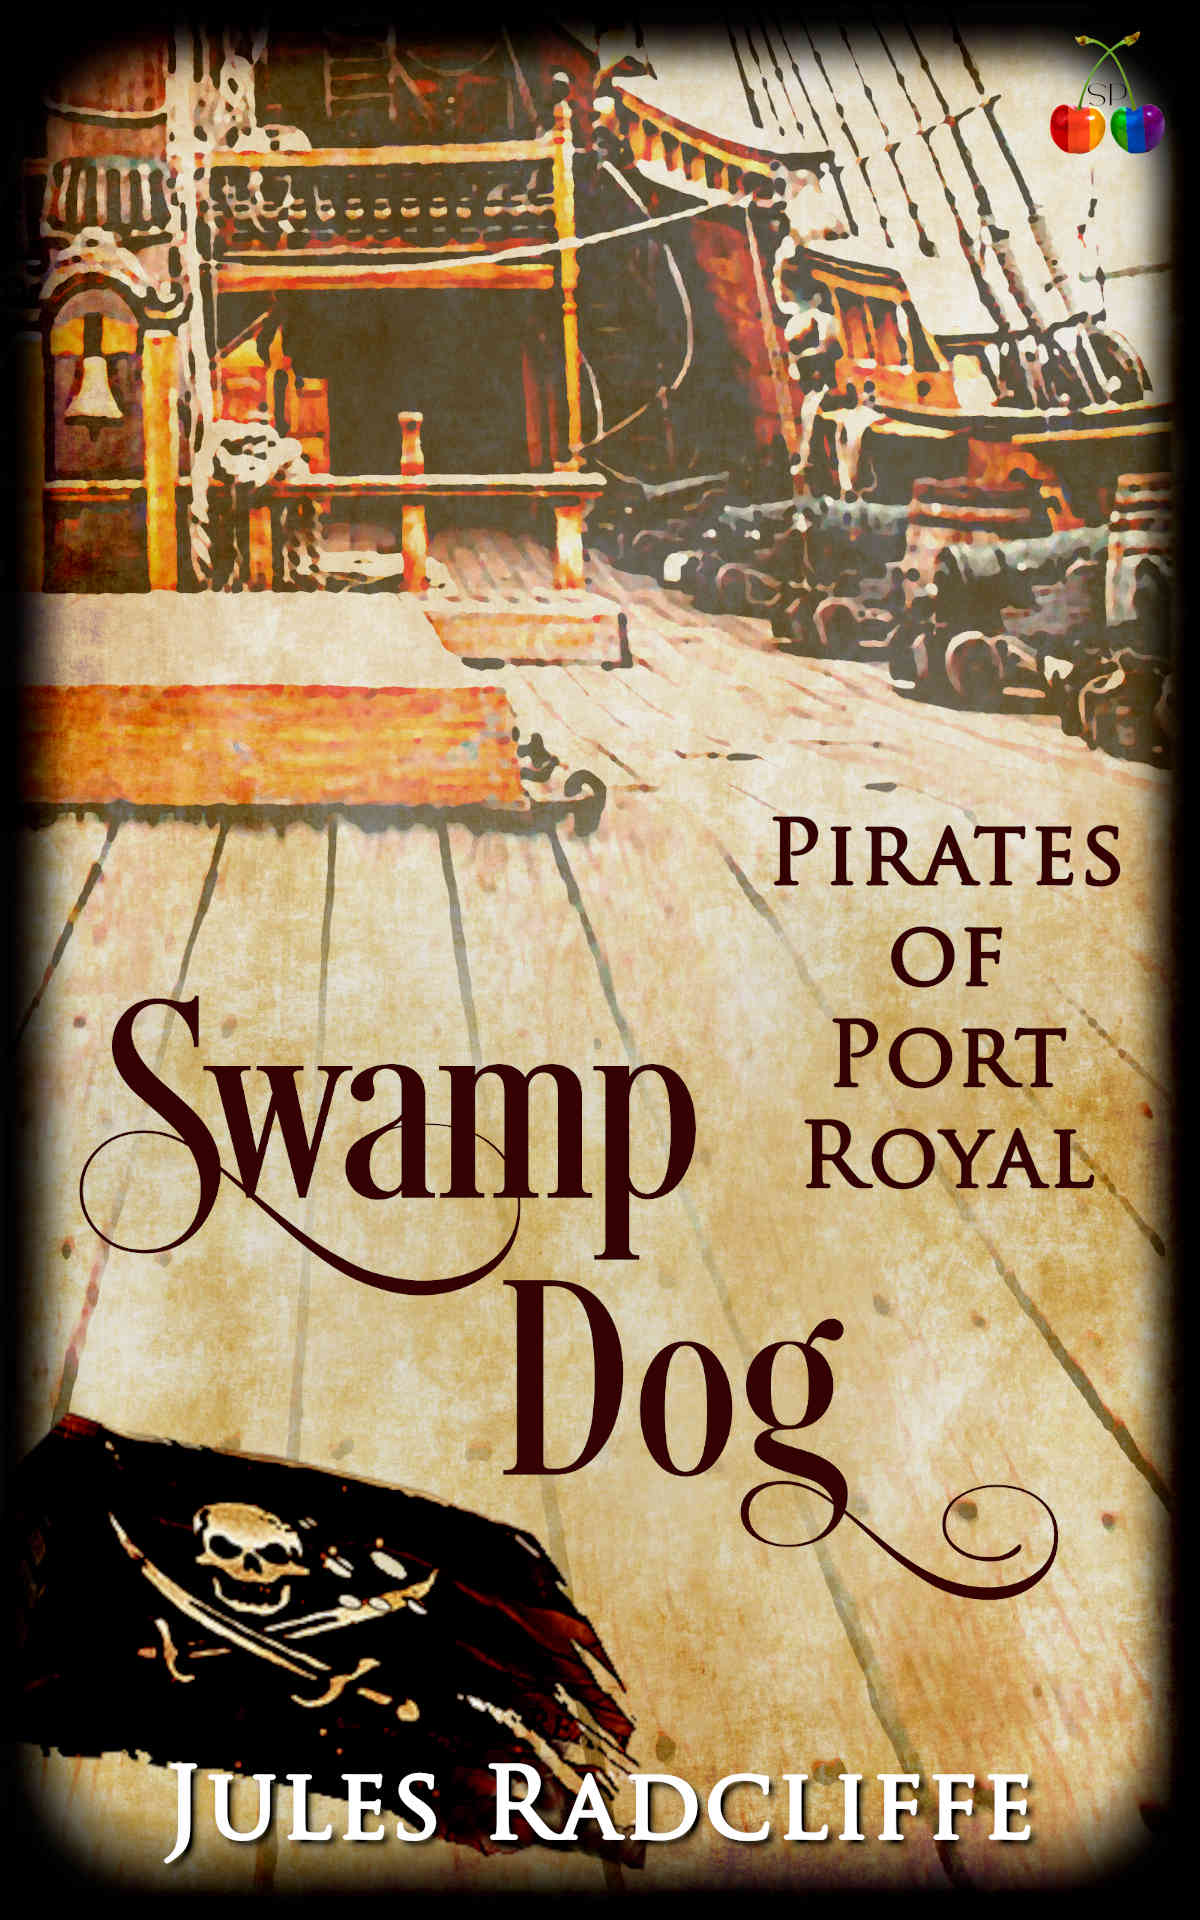 Cover of Swamp Dog by Jules Radcliffe